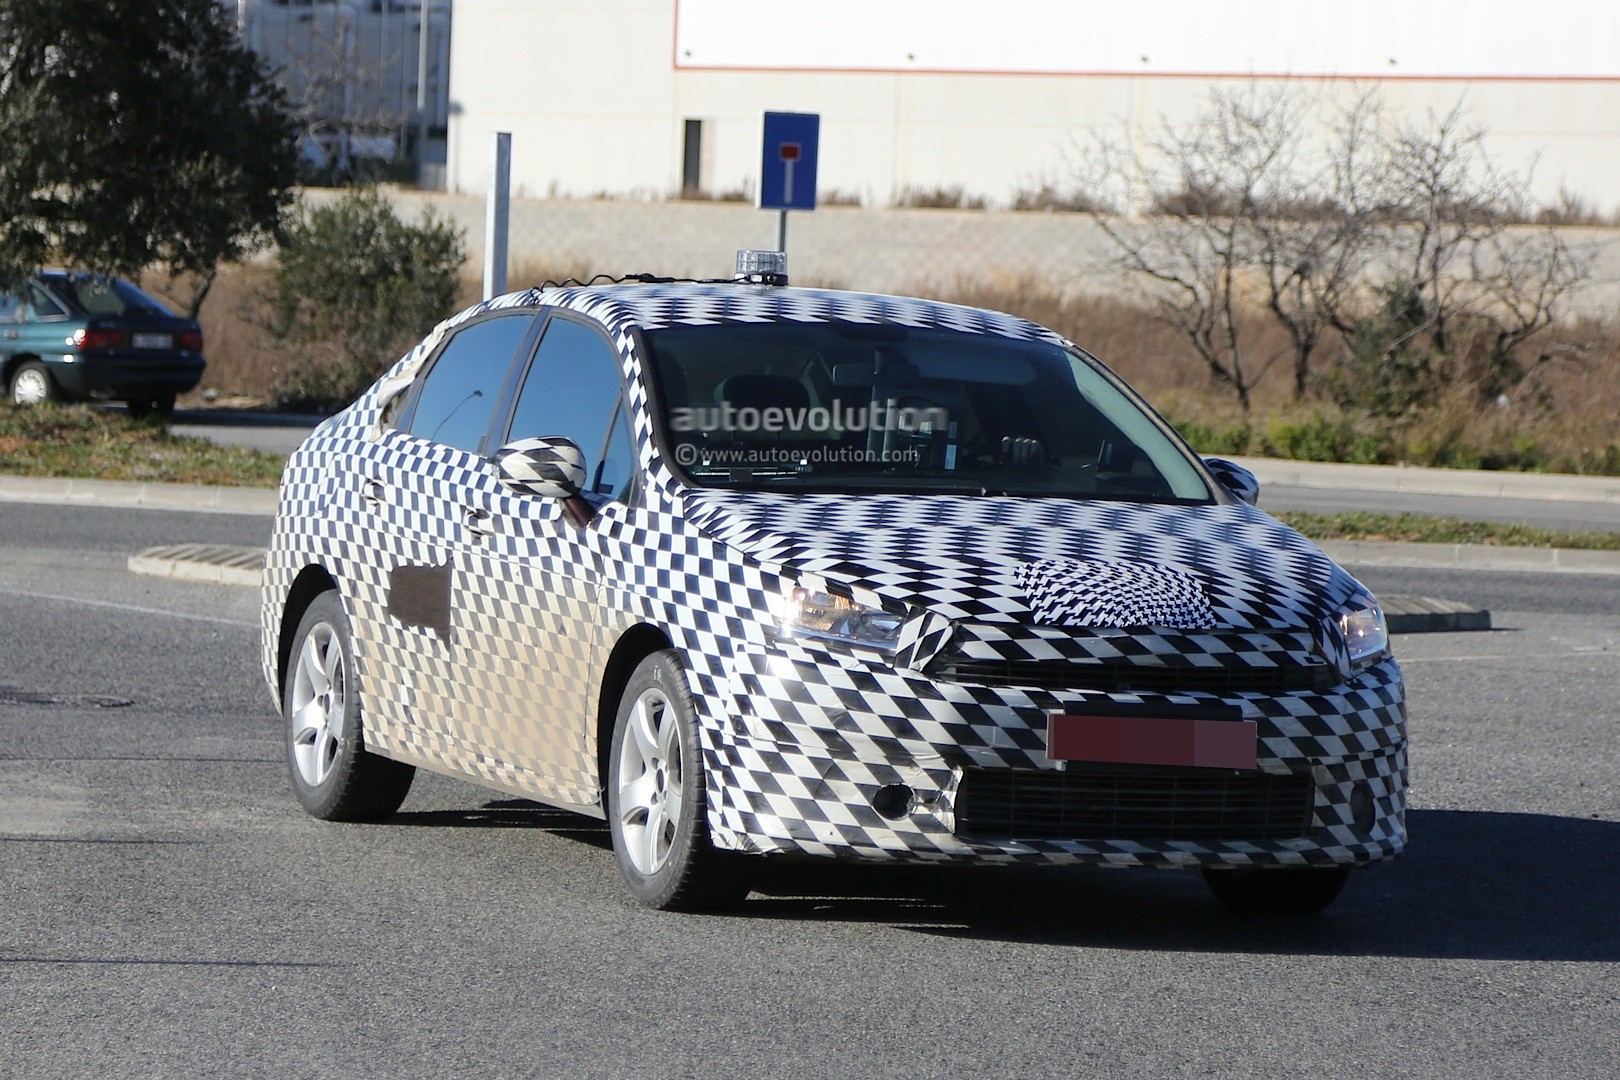 2015 - [Citroën] C4 C-Quatre - Page 2 Mystery-citroen-compact-sedan-spied-testing-in-spain-could-be-the-new-c4-lunge_2